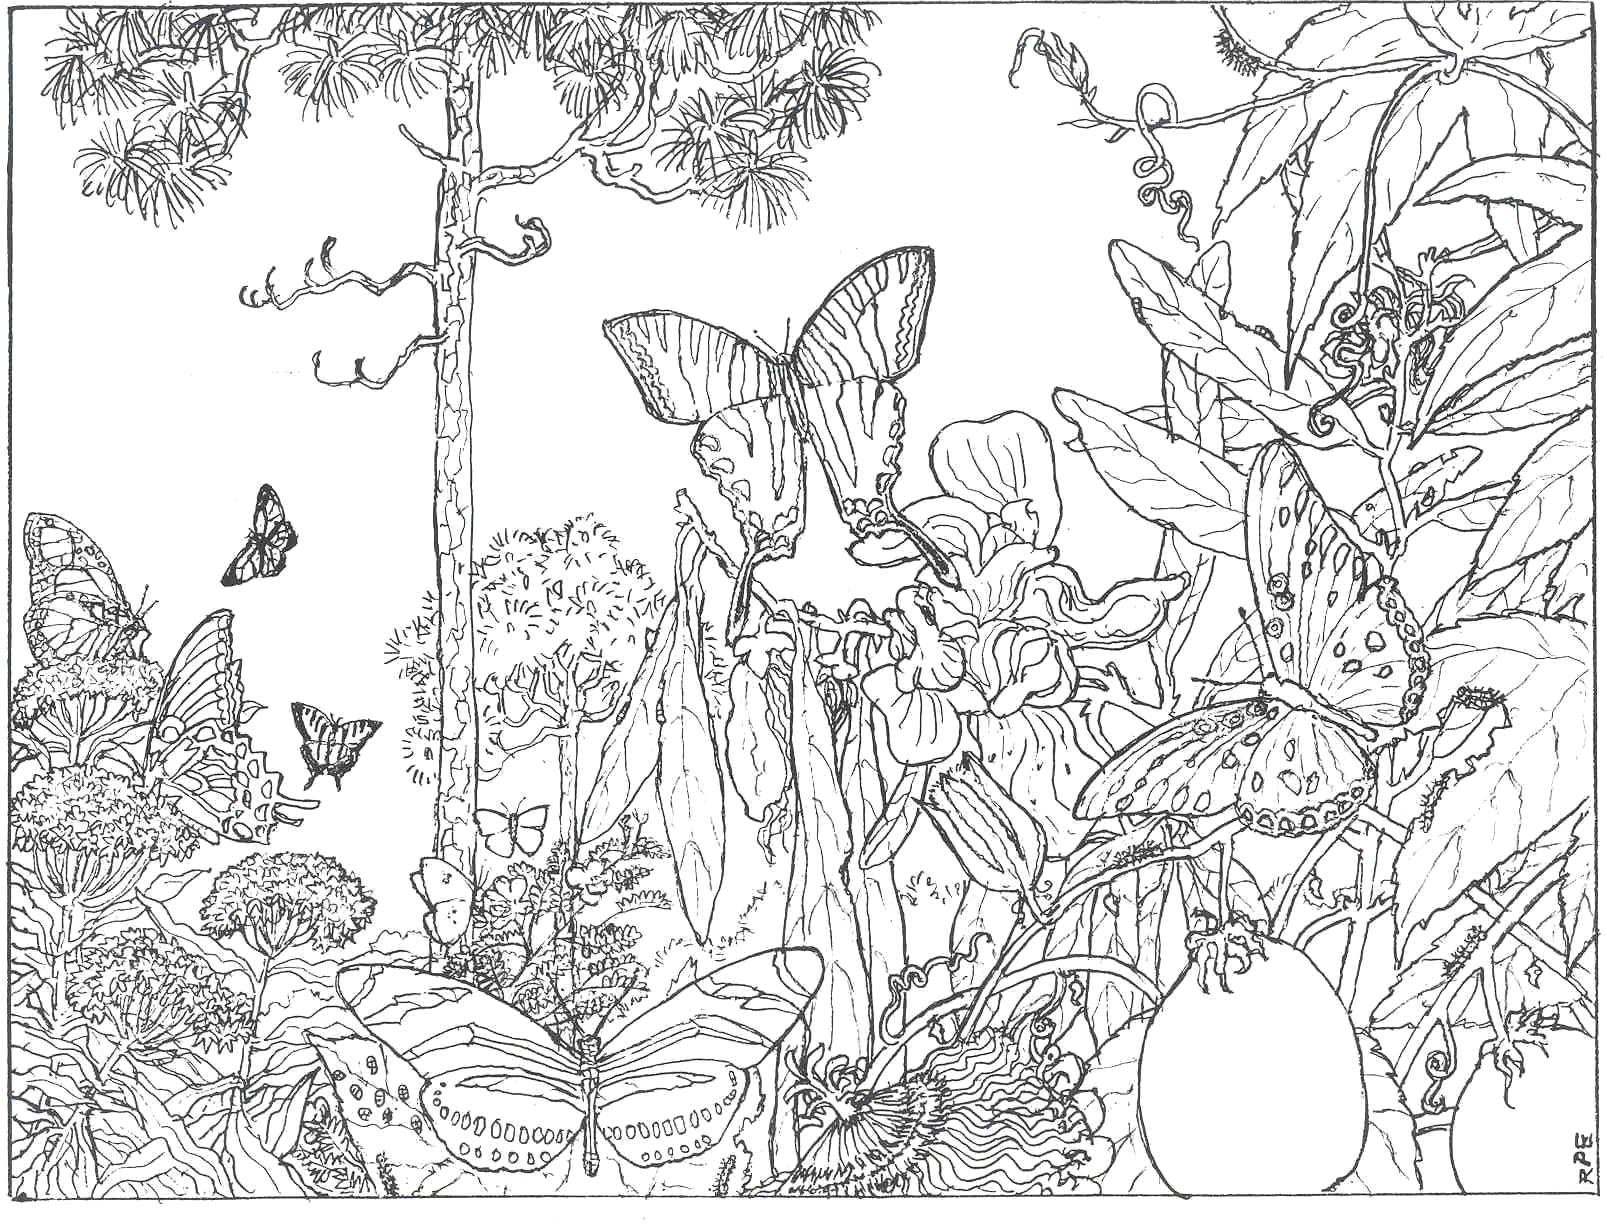 Coloring Ideas : Color Pictures Free Intricate Coloring Pages New - Free Printable Nature Coloring Pages